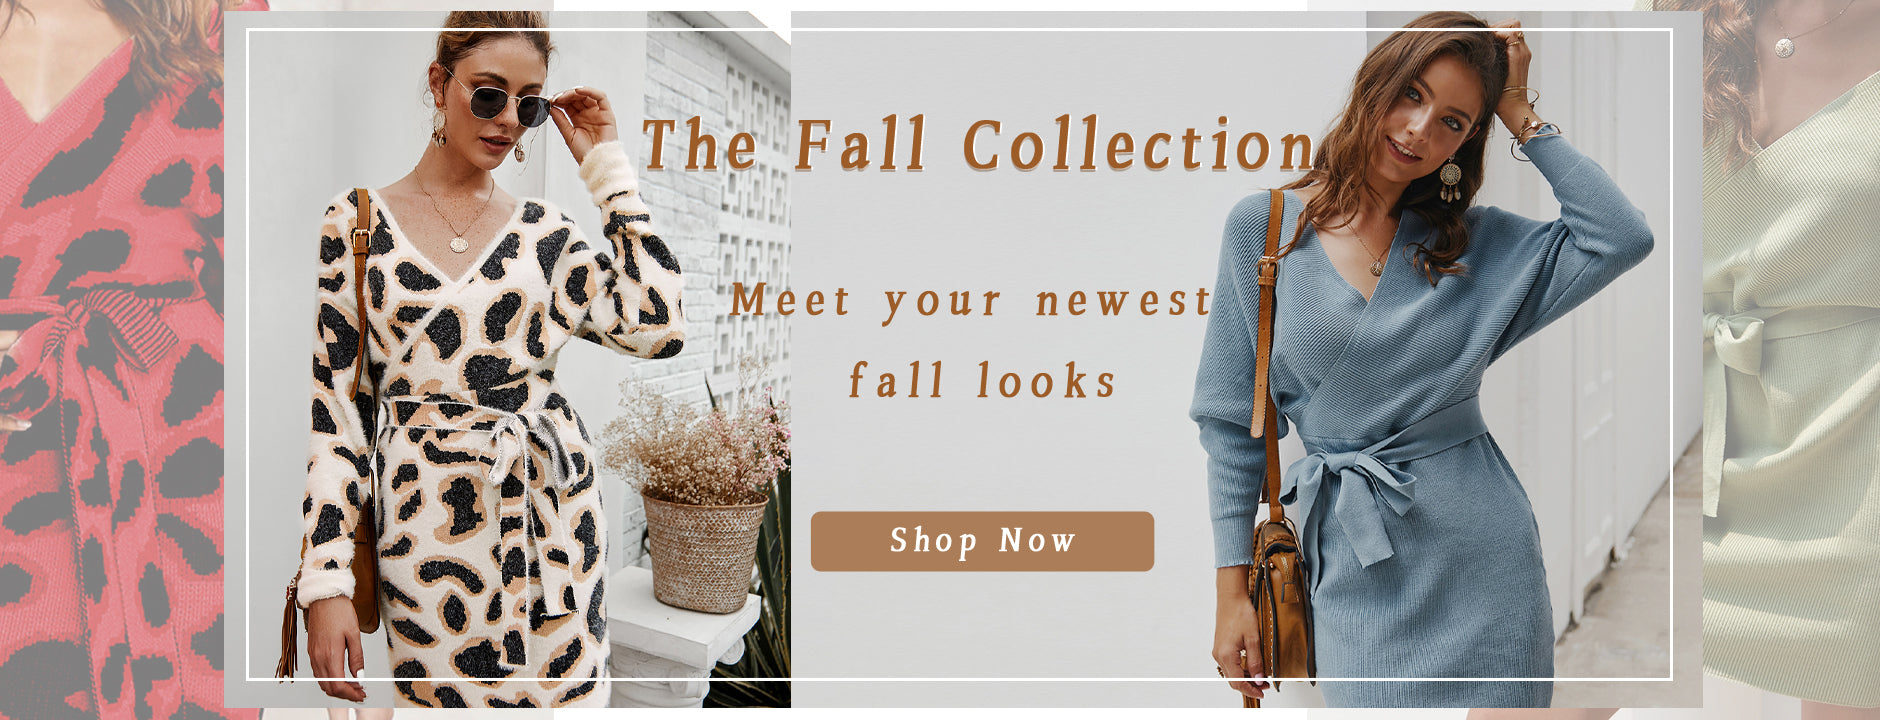 2020 Fall Fashion Trends Autumn Dresses Outfits For Women | Gardenwed